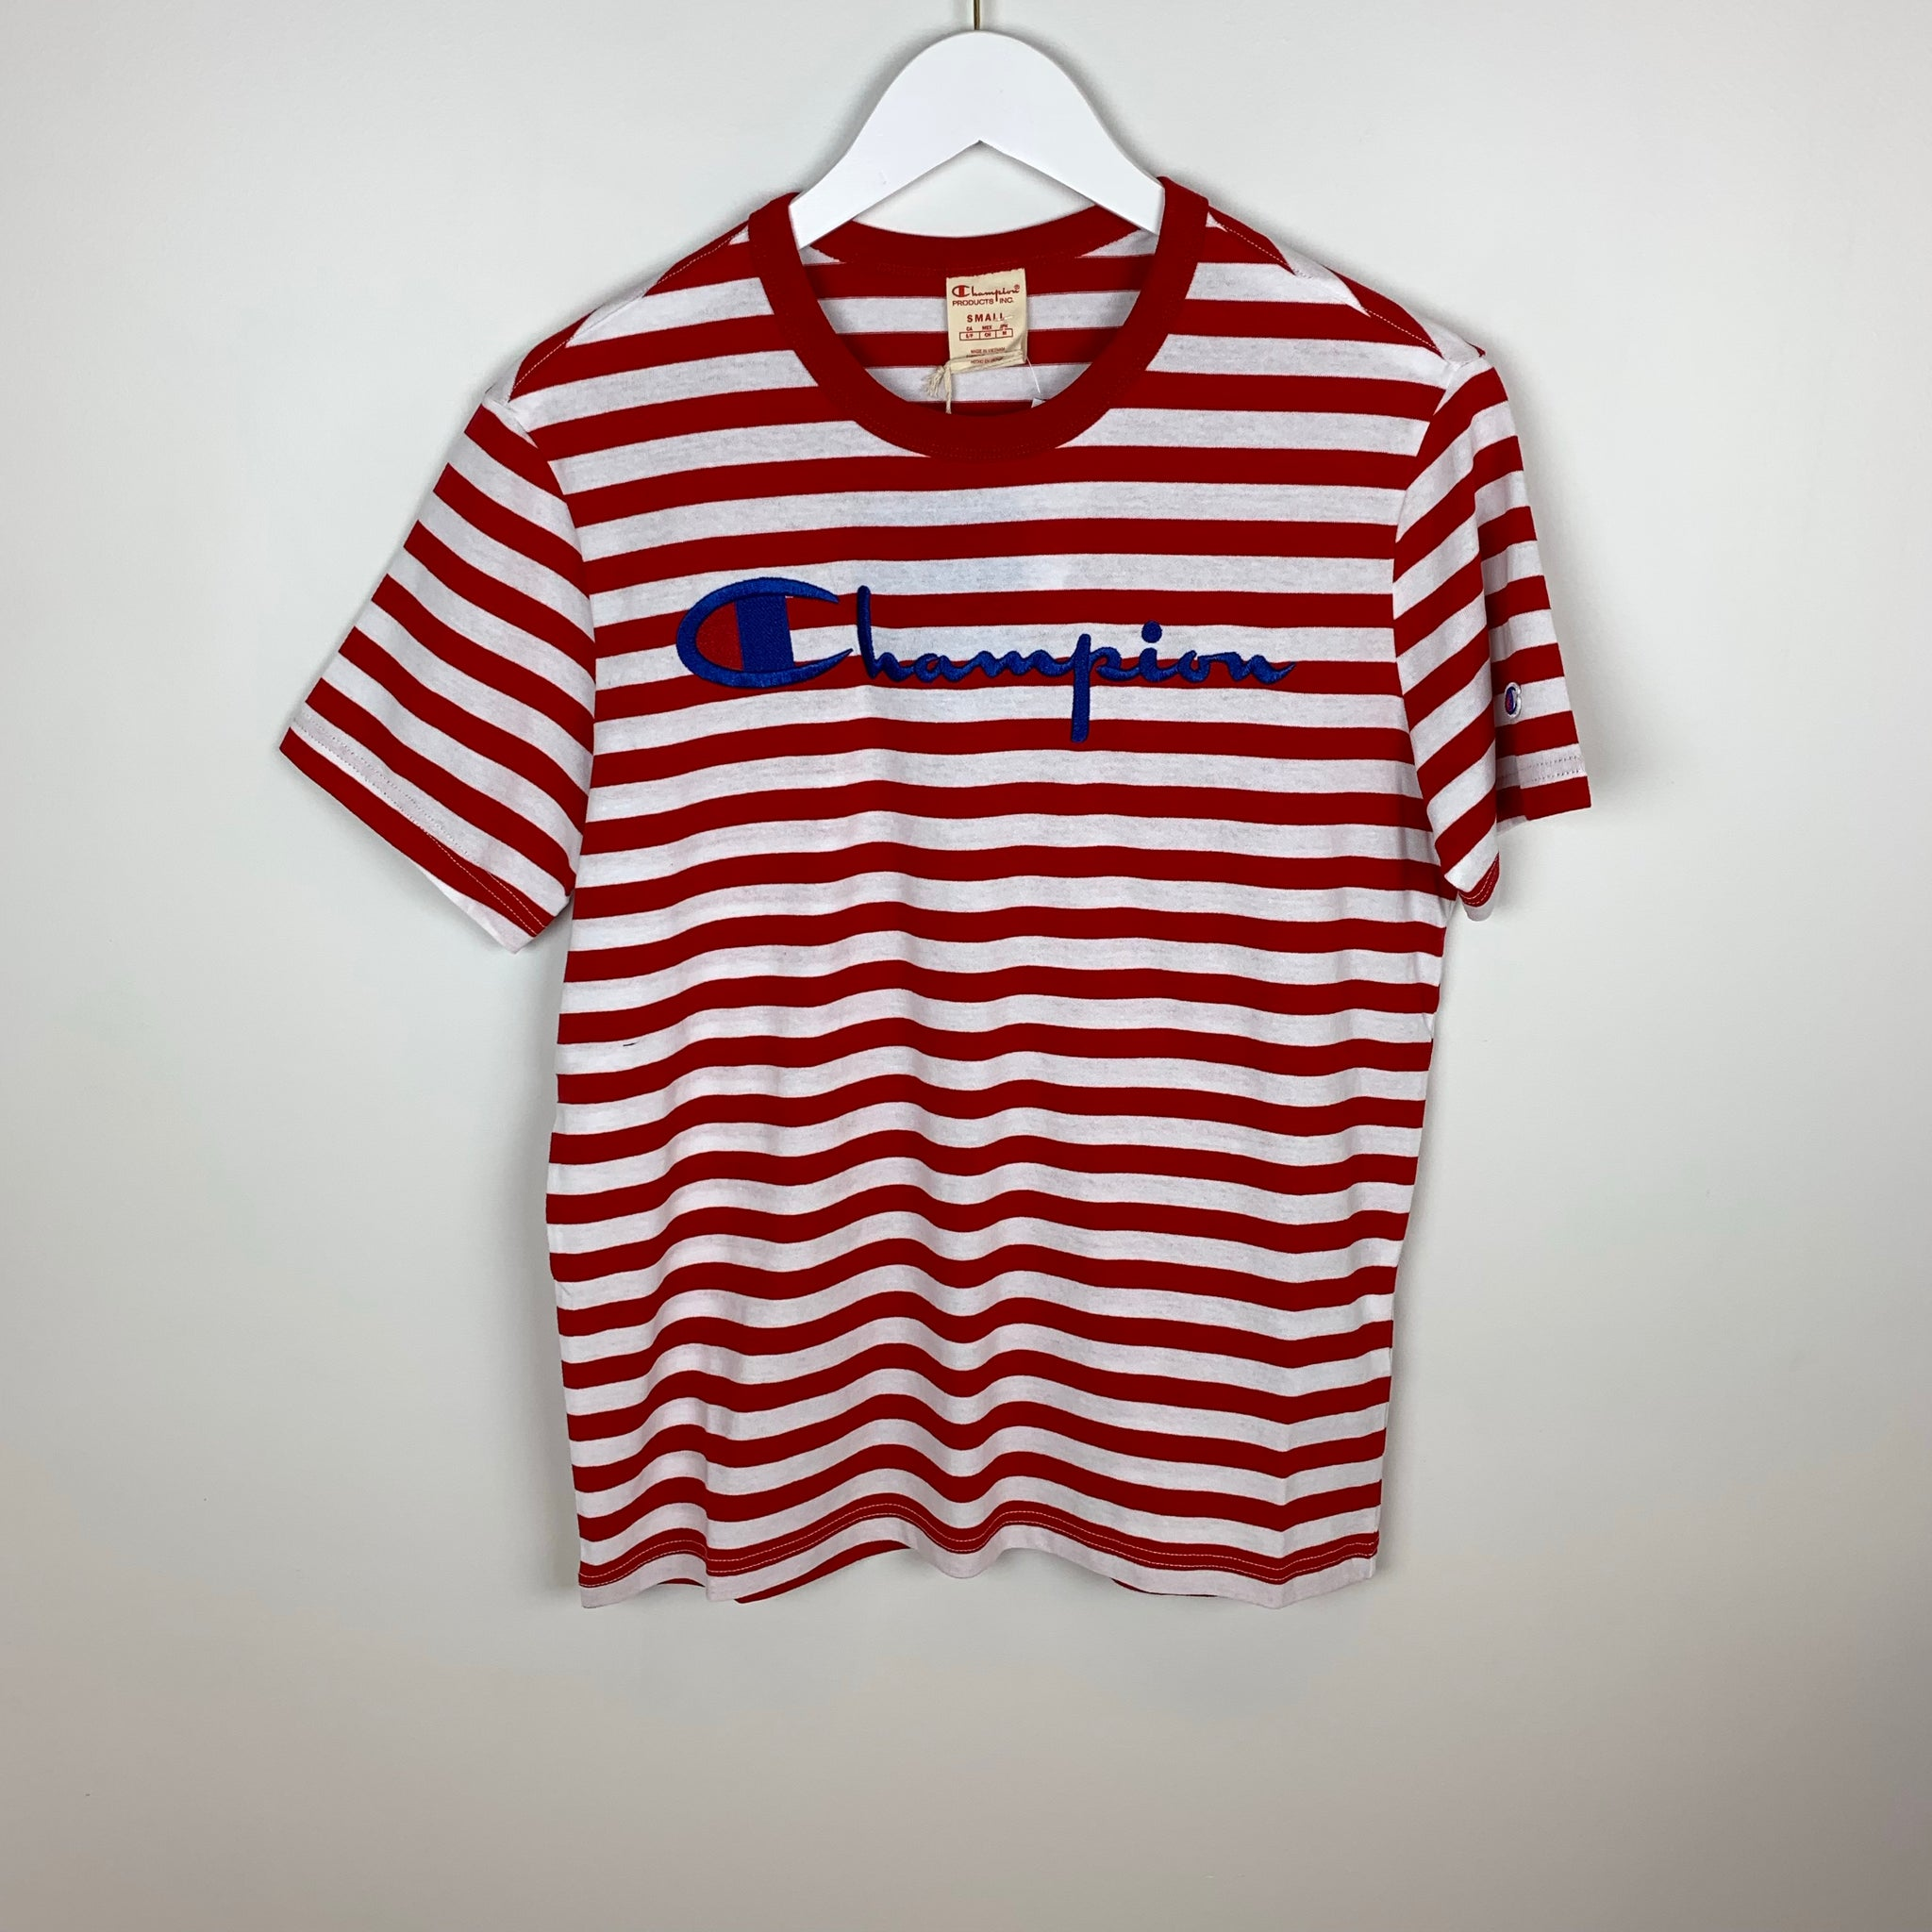 Champion Europe Reverse Weave, Script S/S T-Shirt, Striped, Team Red Scarlet